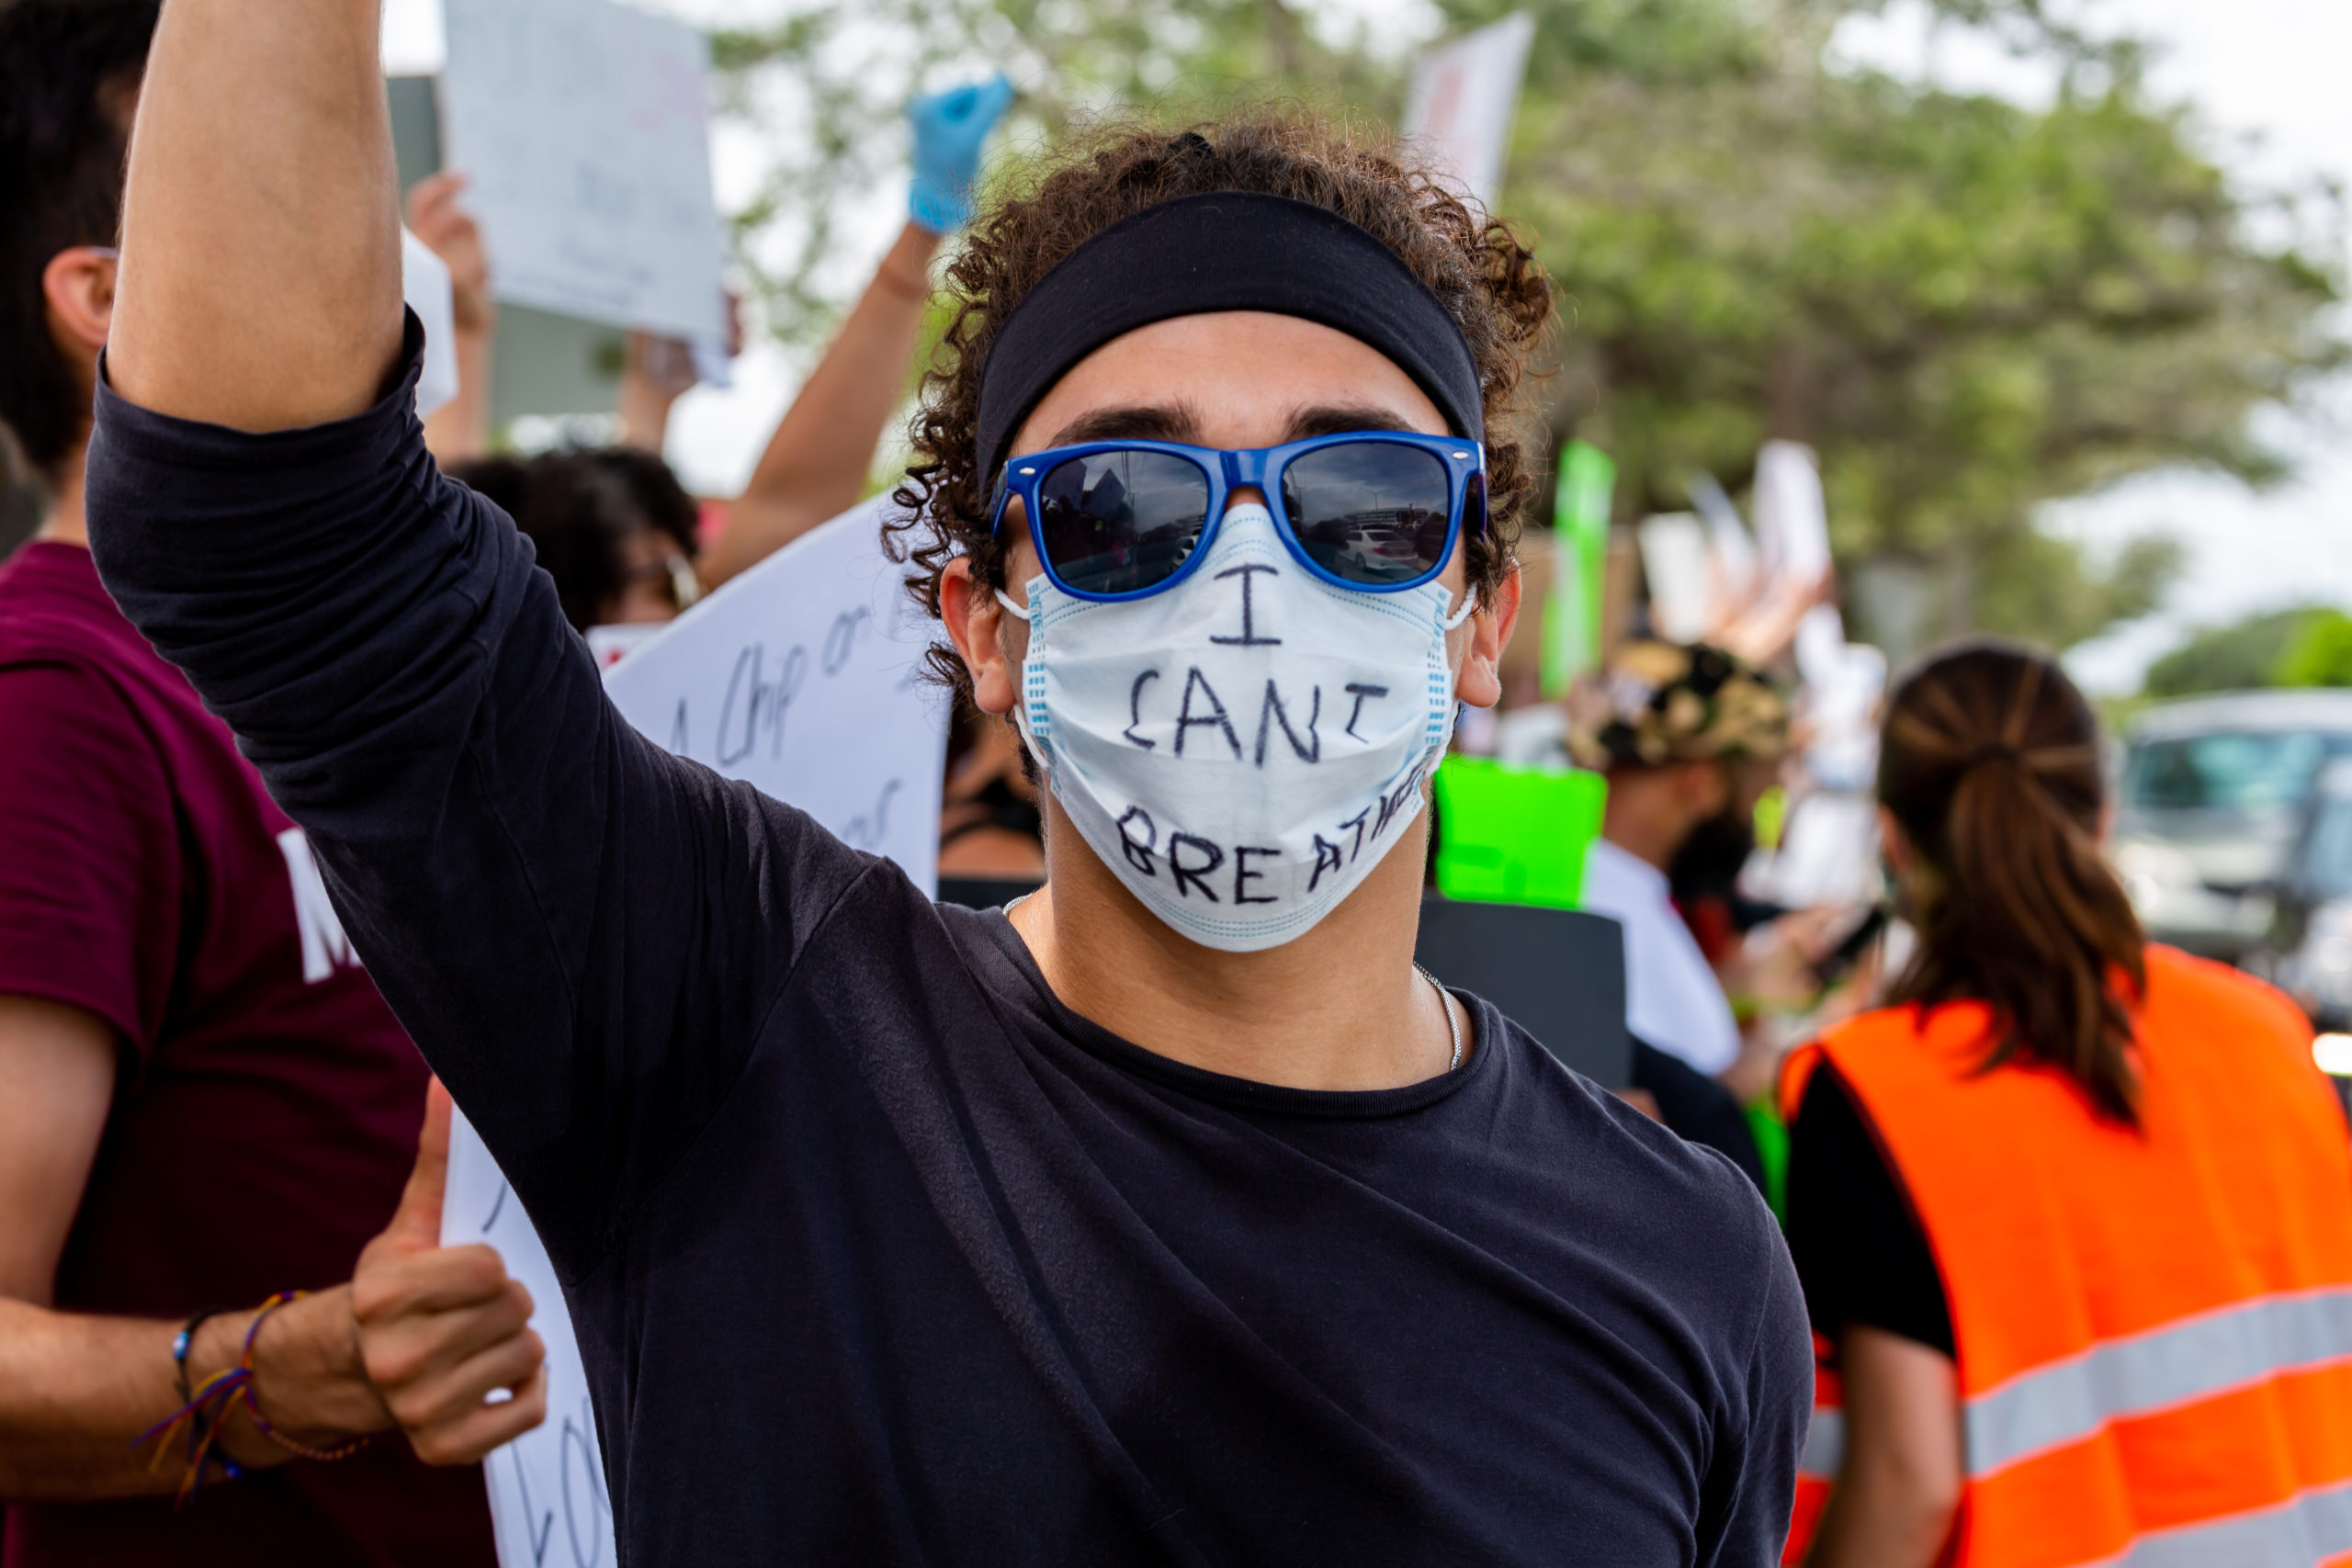 """A man wearing sunglasses and a mask with the phrase """"I Can't Breathe"""" in protest against the death in Minneapolis police custody of African-American man George Floyd at Coral Springs, Florida."""